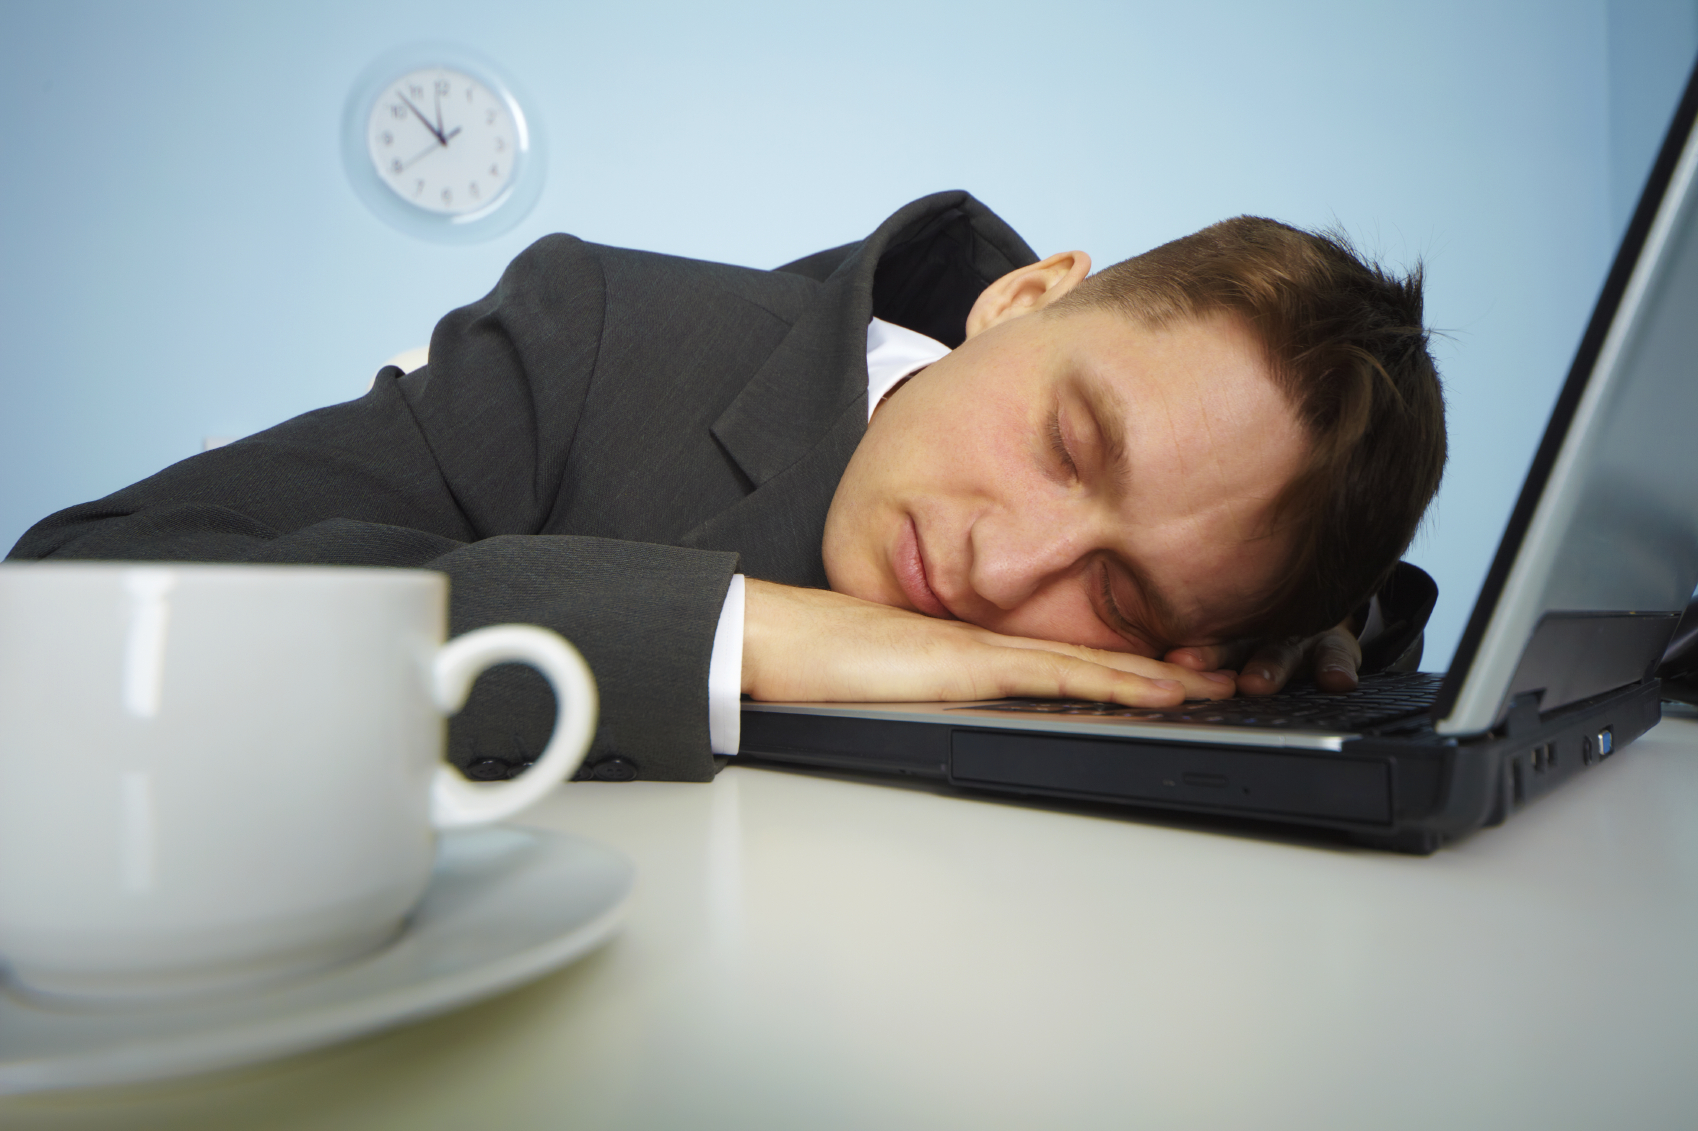 5 Things You Should Not Do When You're Tired